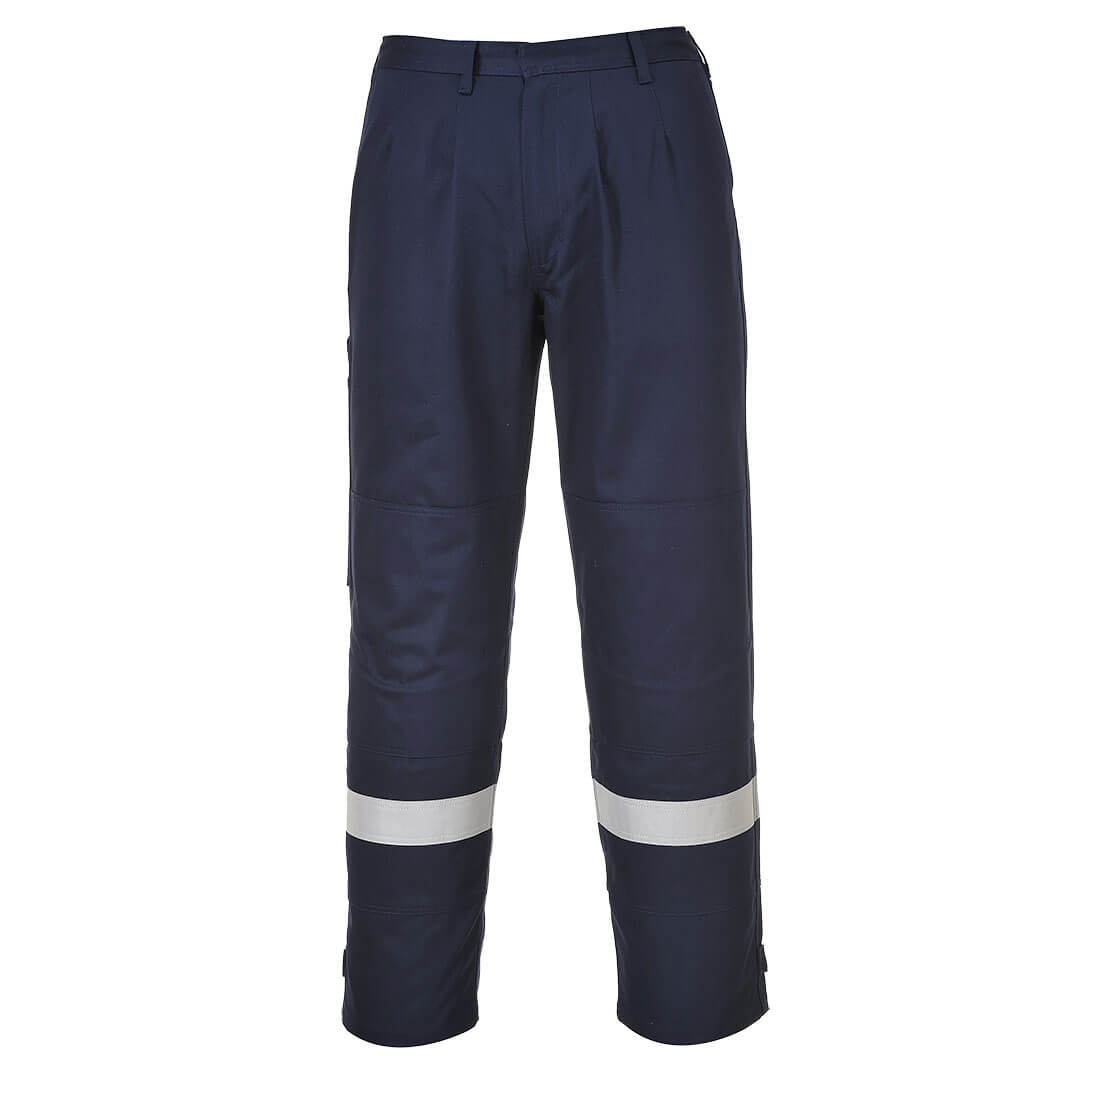 Image of Biz Flame Plus Mens Flame Resistant Trousers Navy Blue 2XL 34""